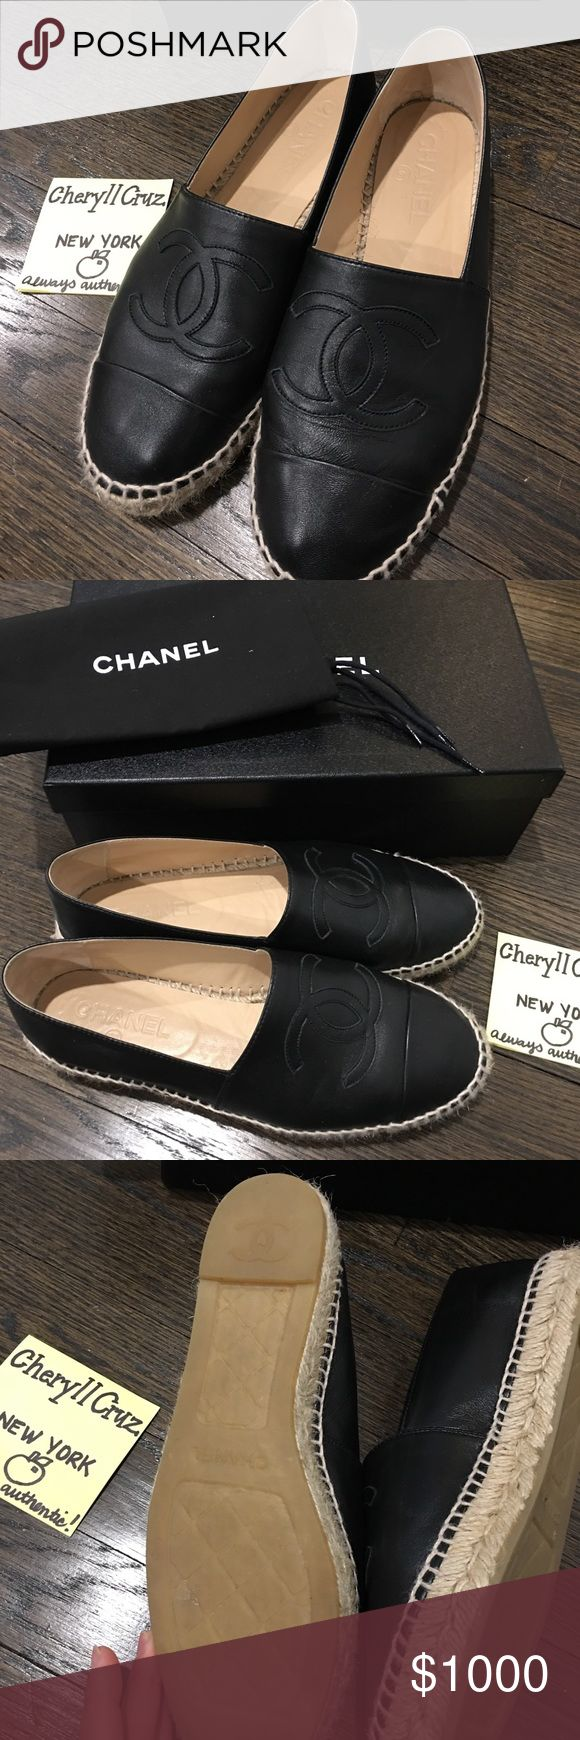 authentic chanel espadrilles 39 eu these are authentic chanel black espadrilles in very excellent used condition